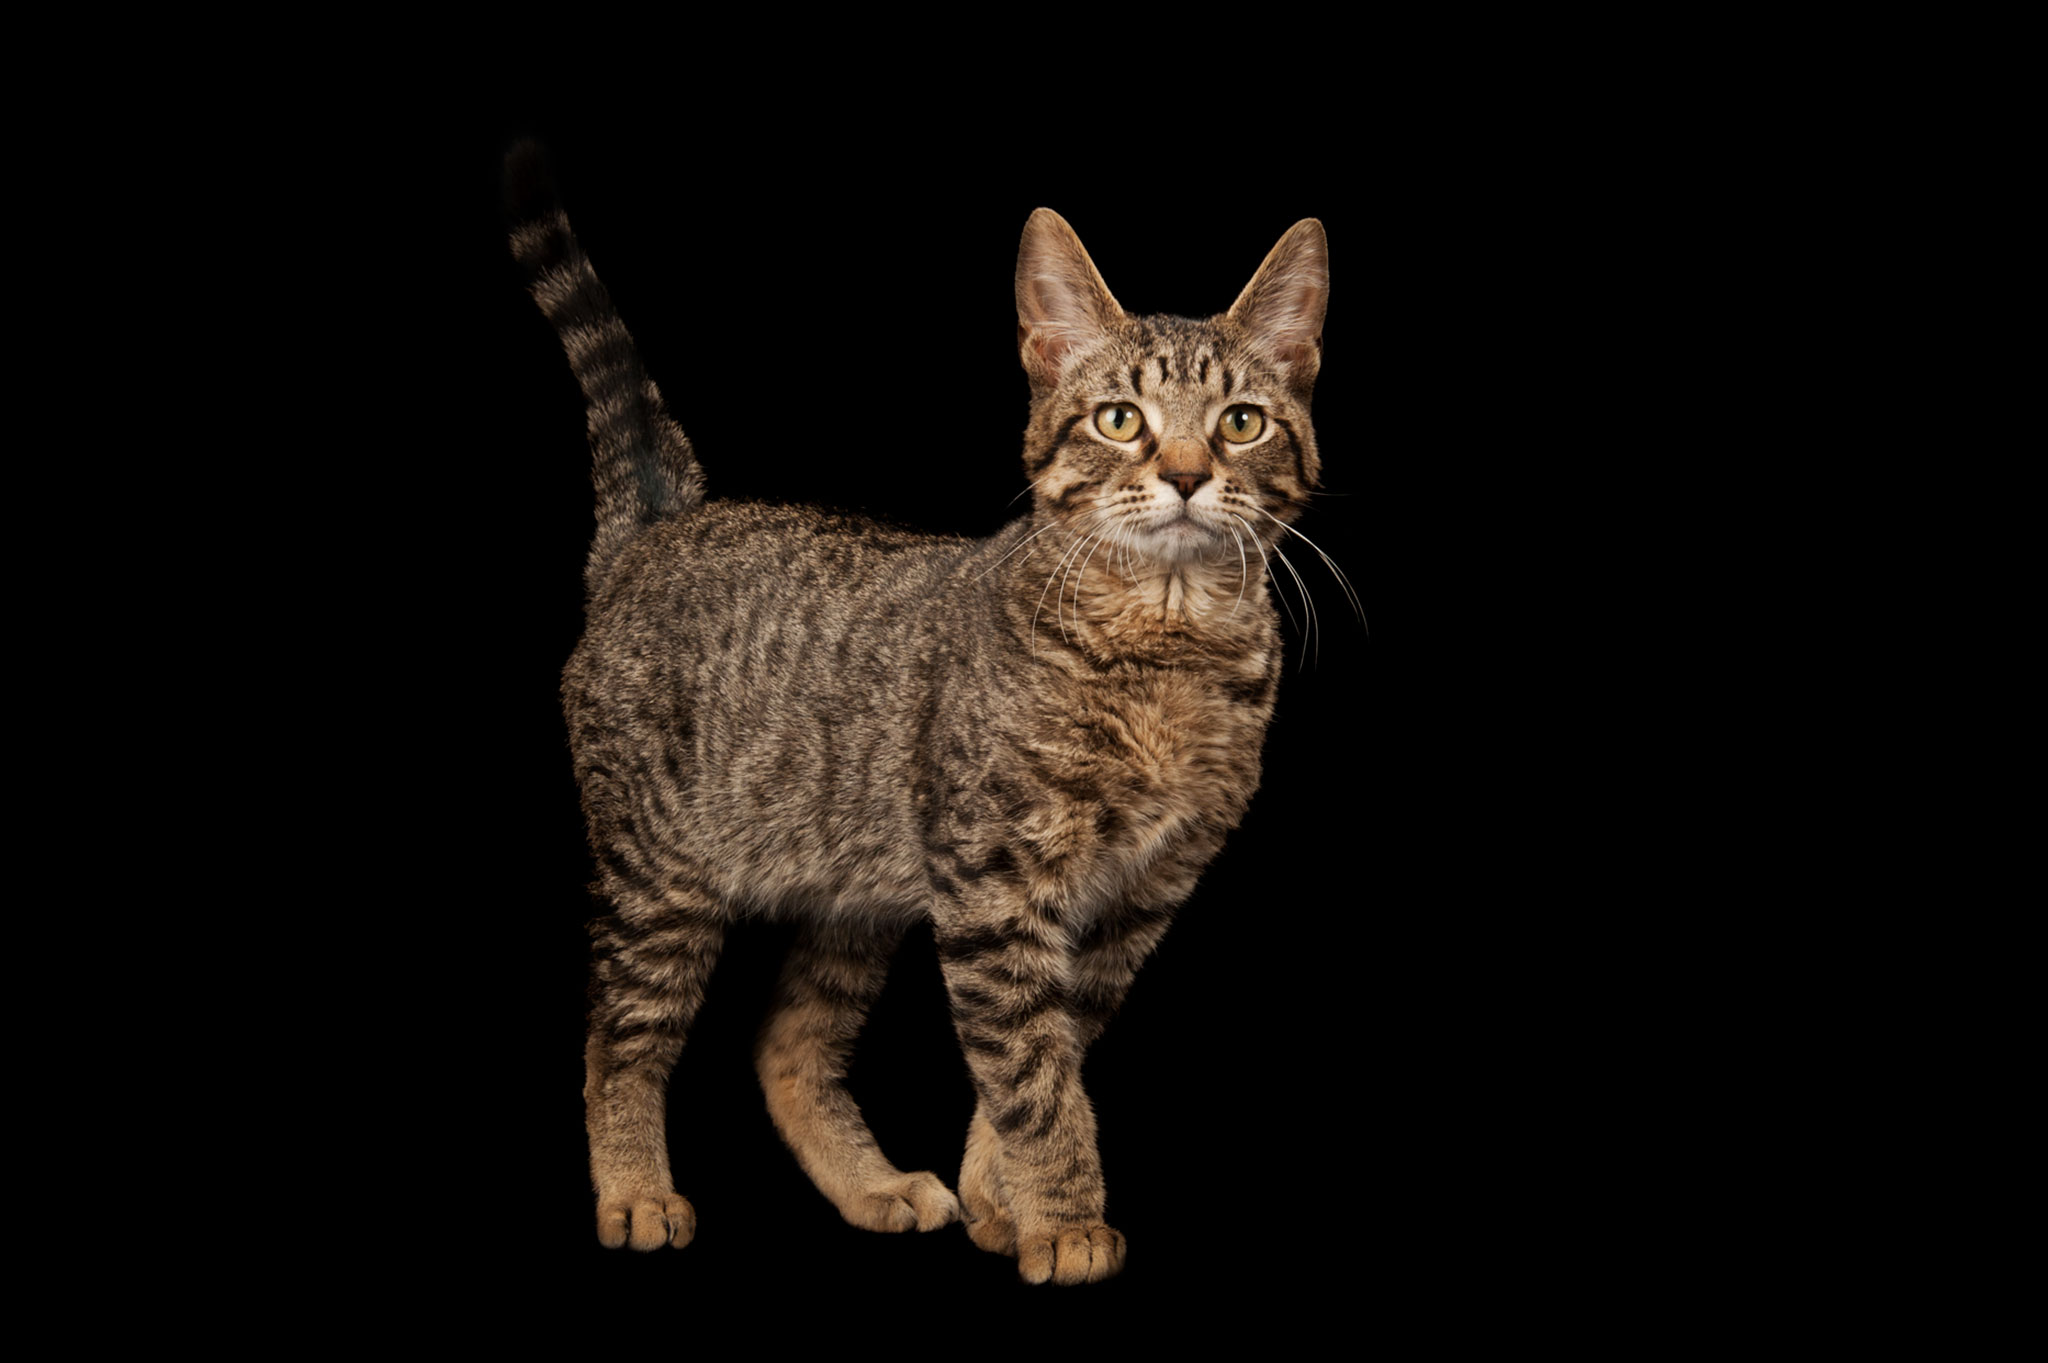 Cats Domesticated Themselves, Ancient DNA Shows